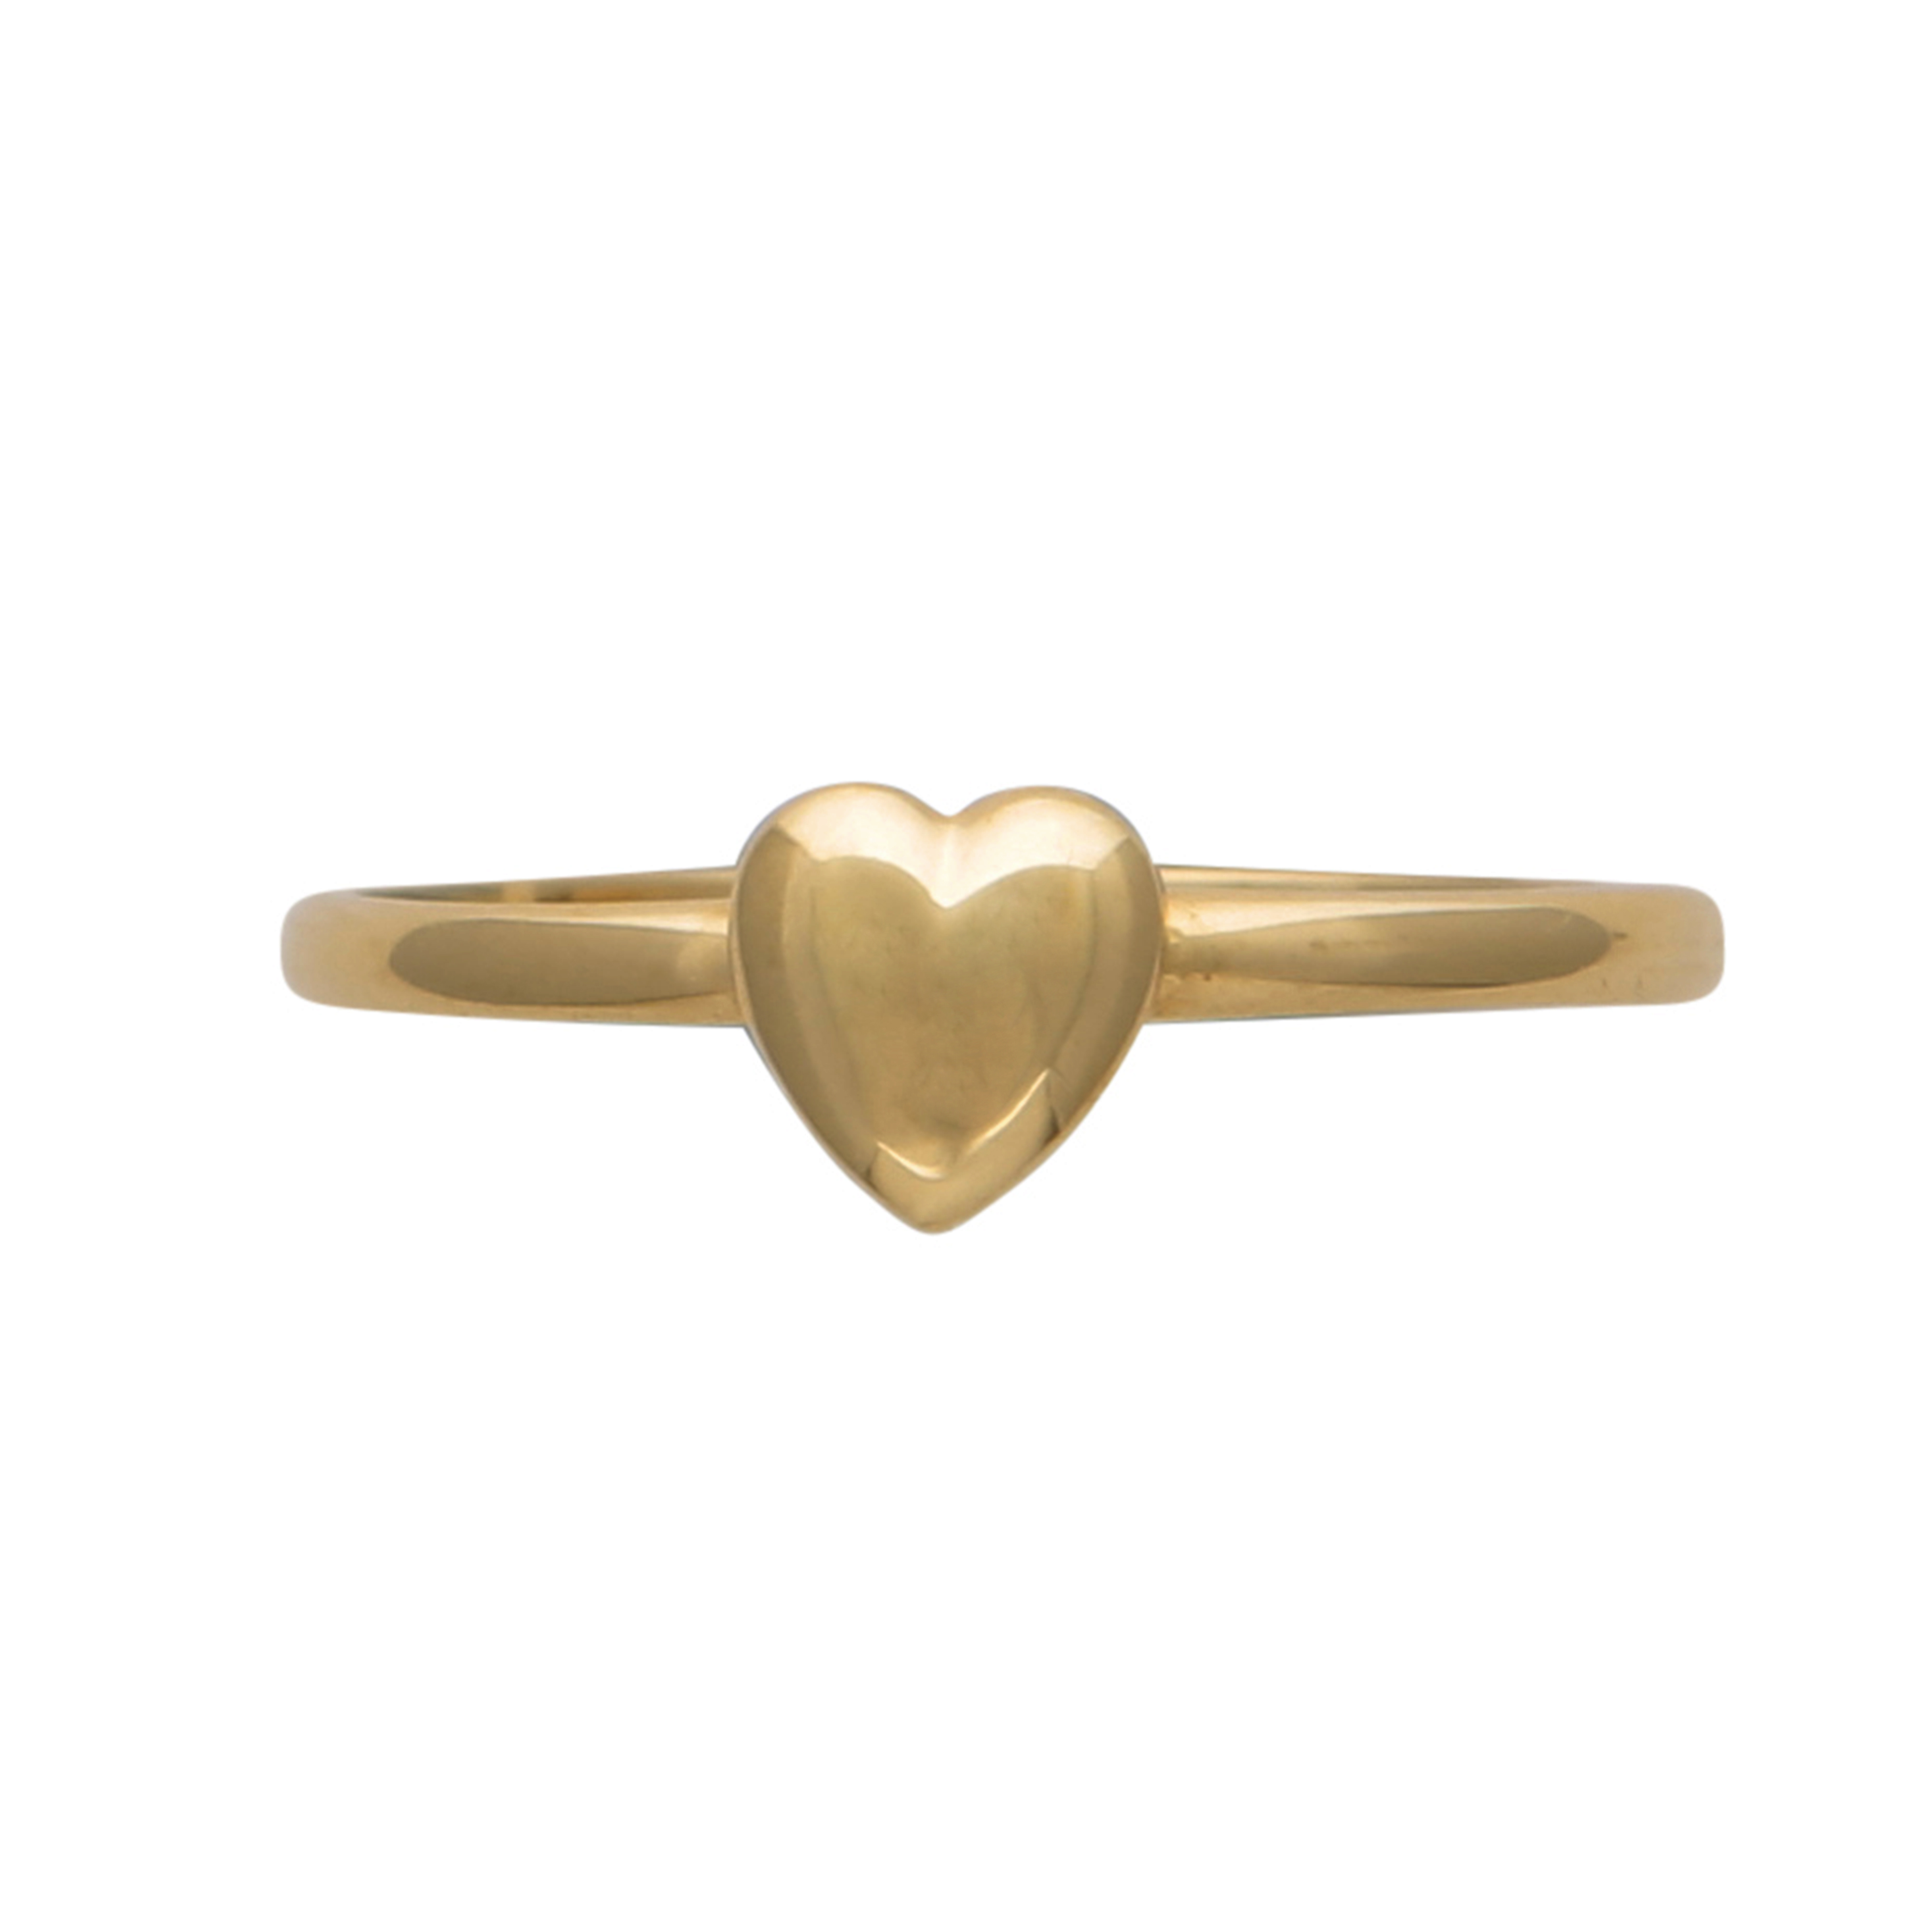 Los 215 - A Pandora style heart charm ring in 14ct yellow gold, designed as a single heart charm measuring 5.